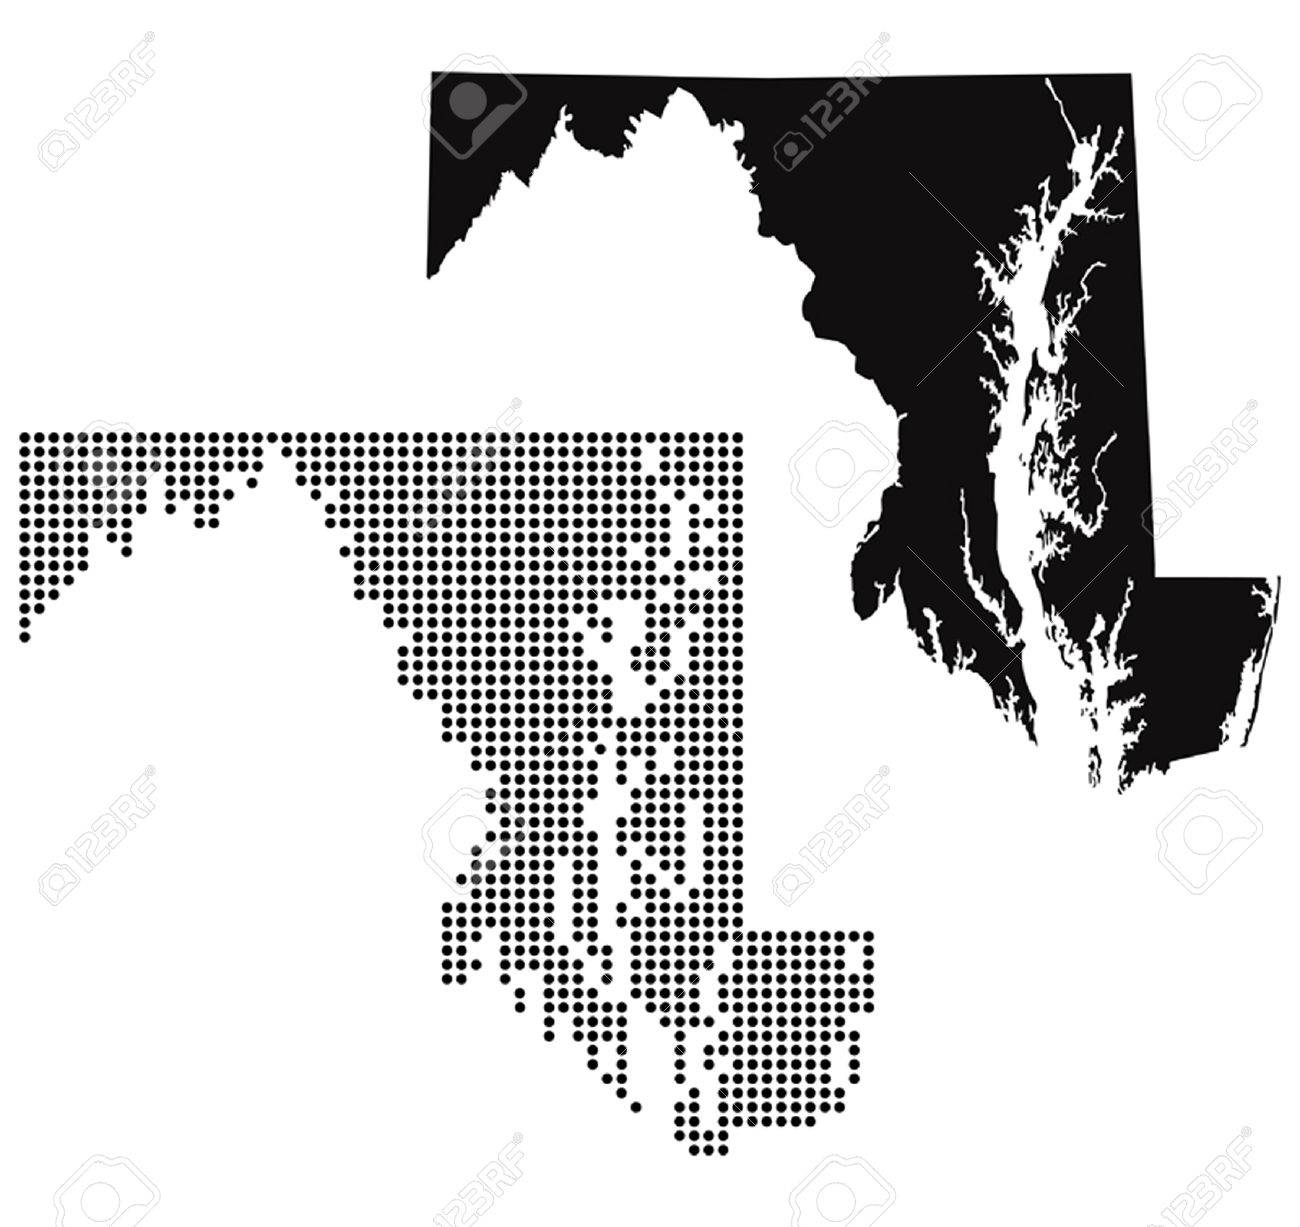 Dotted And Silhouette Maryland Map Royalty Free Cliparts Vectors